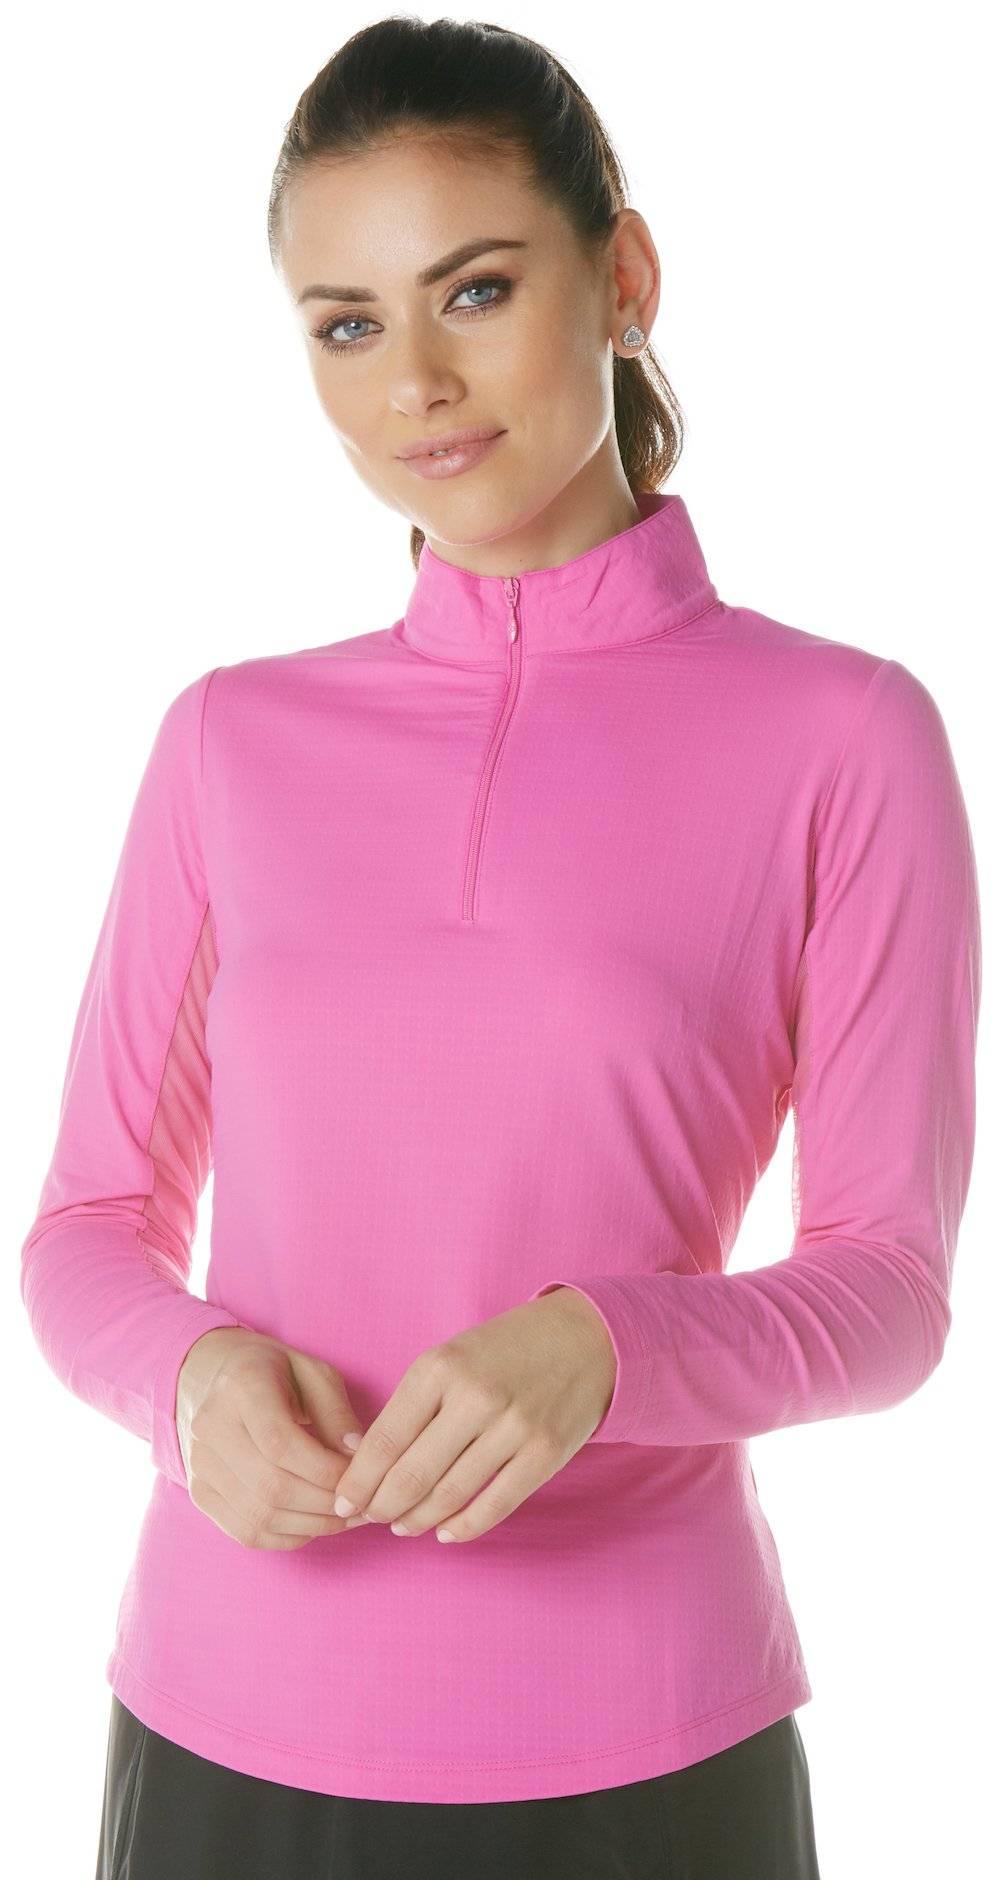 IBKUL Solid Mock Neck Top - 80000 (Hot Pink, X-Small) by IBKUL